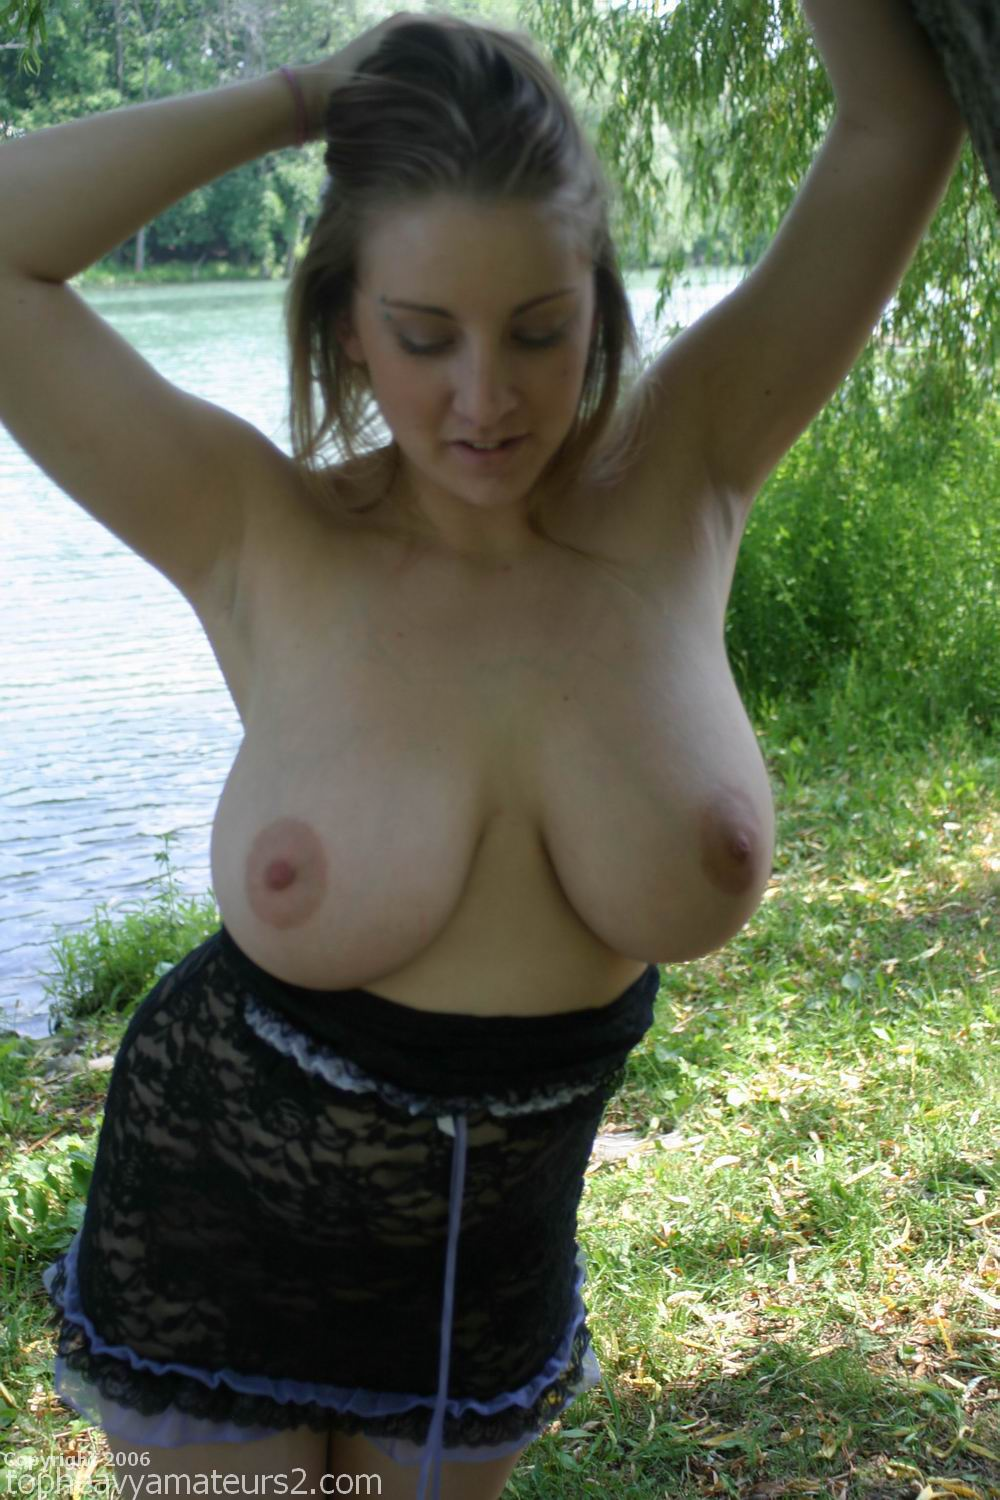 Big tits that look so good clothed and exposed 6